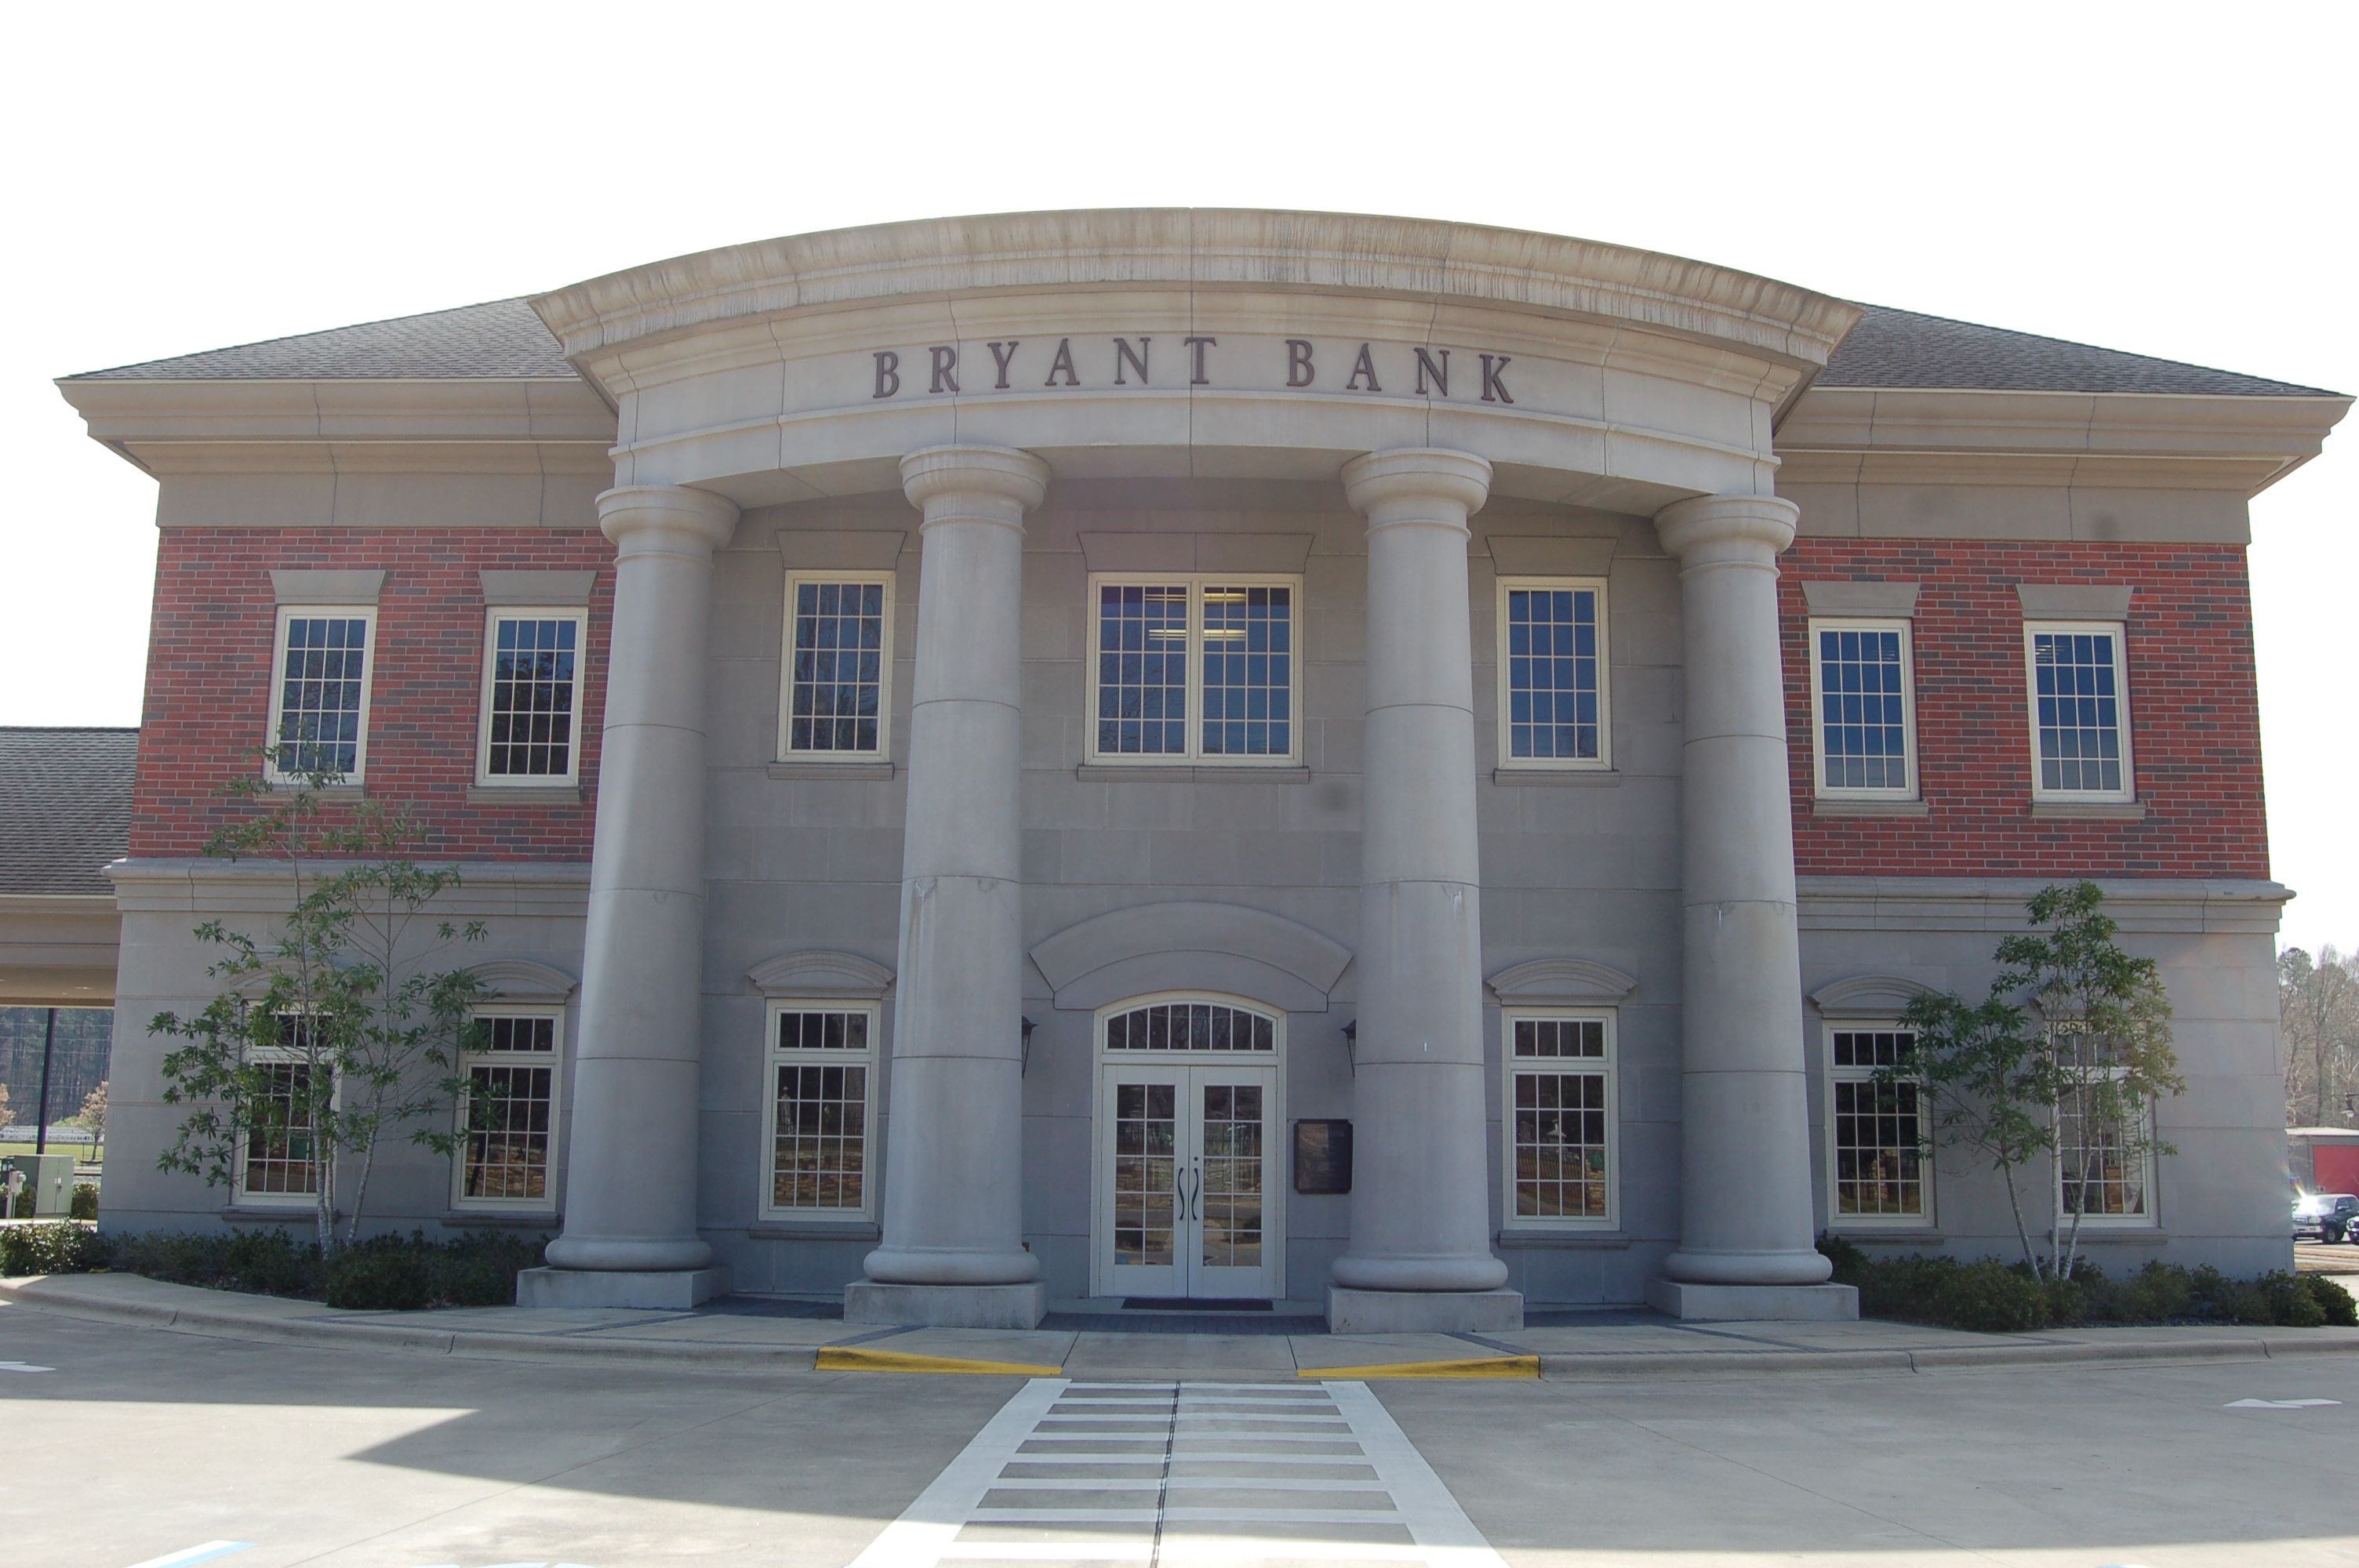 Bryant Bank turns banking into thanking